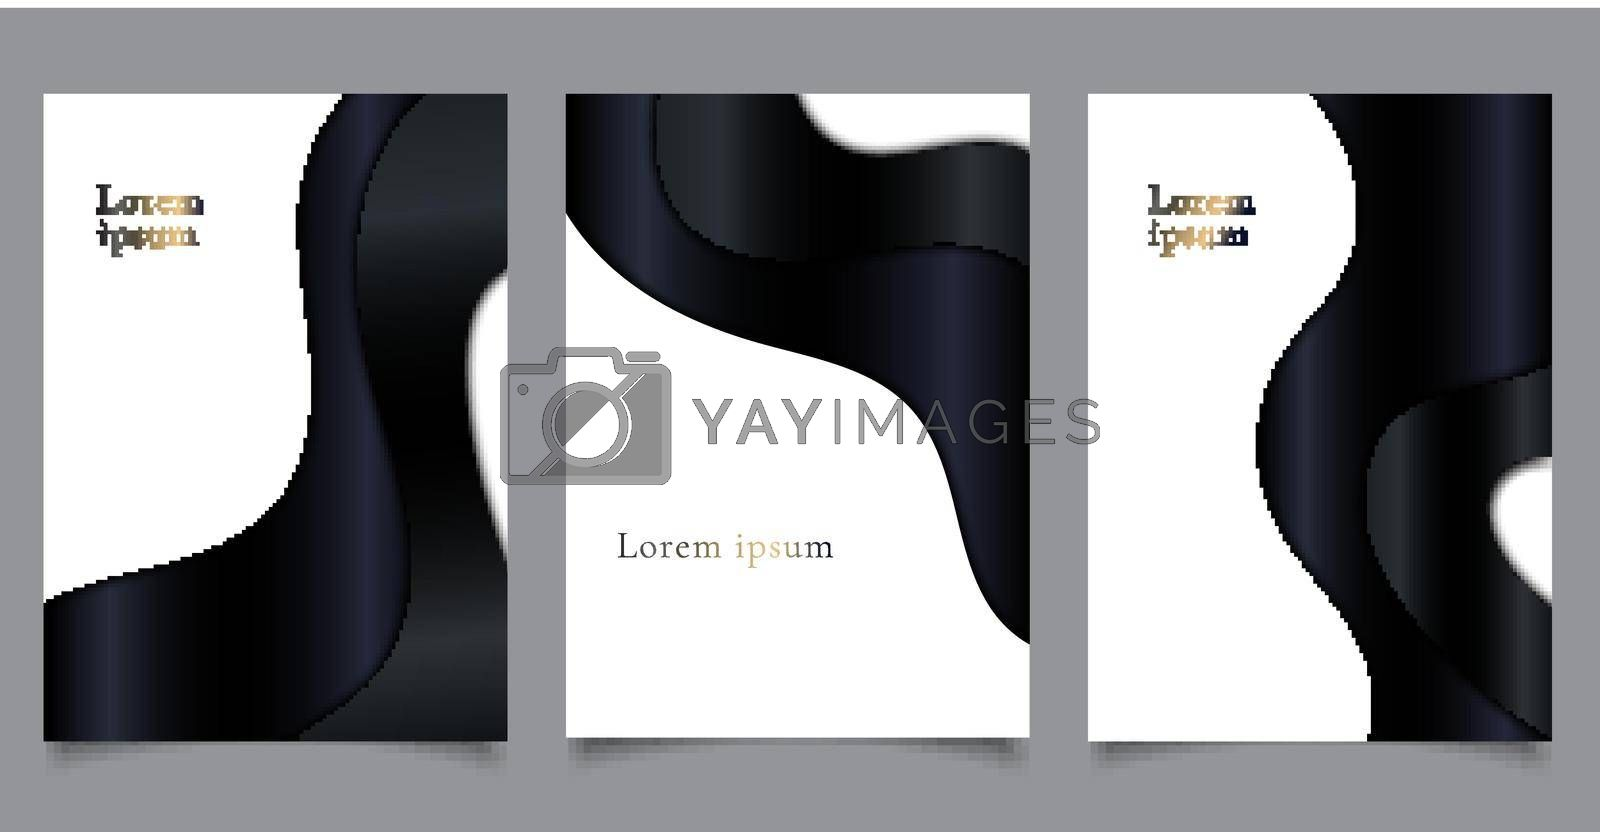 Set of brochure cover luxury template paper cut style black curve wave shape on white background. You can use for business presentation, leaflet, poster, banner, etc. Vector illustration